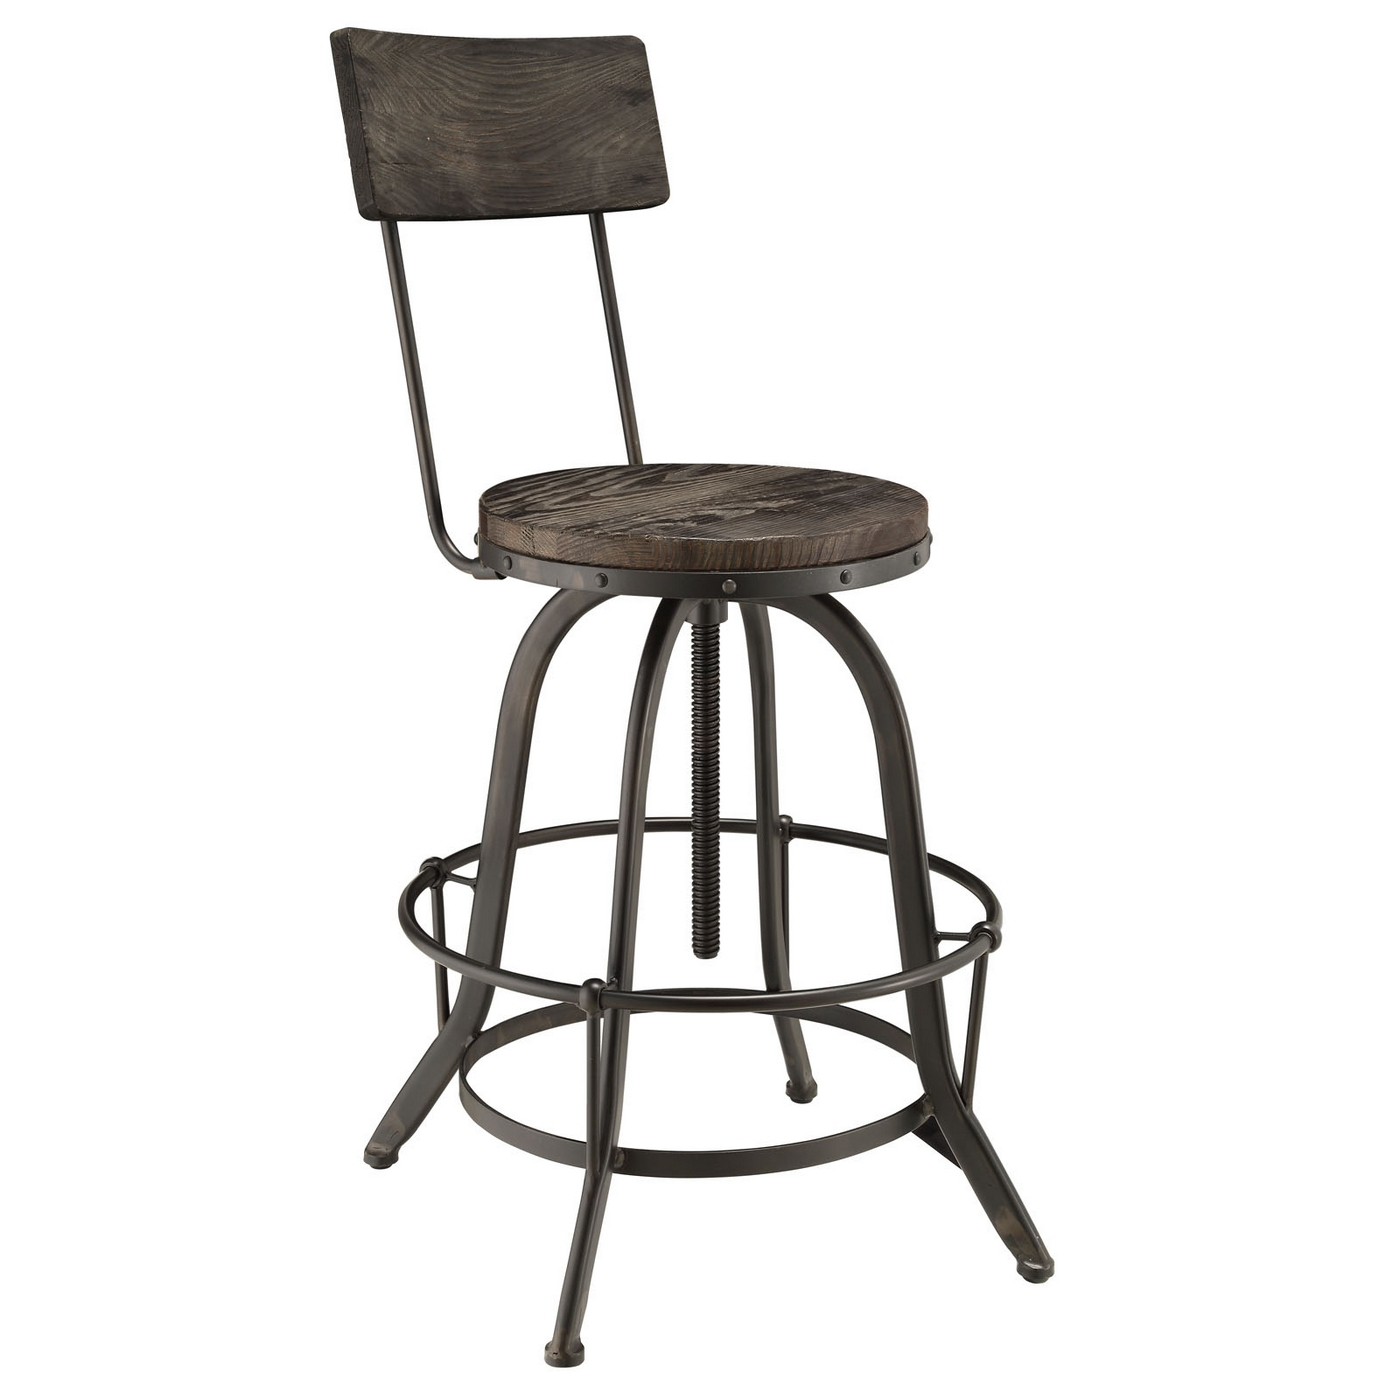 Modern Wood Bar Stool Procure Industrial Modern Wood Bar Stool With Cast Iron